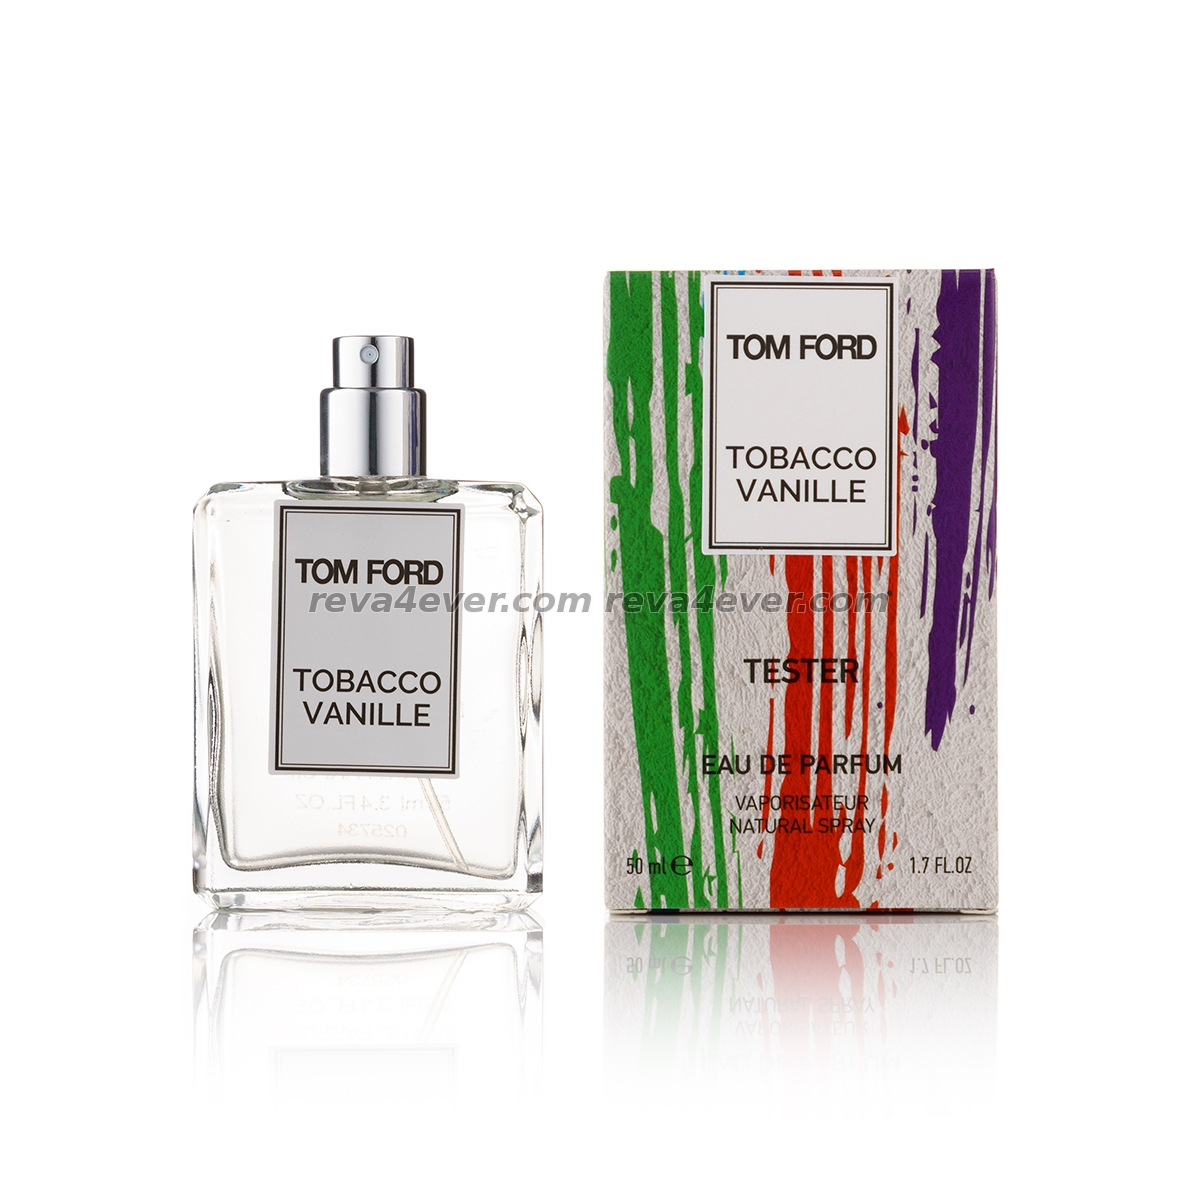 Tom Ford Tobacco Vanille 50ml color tester